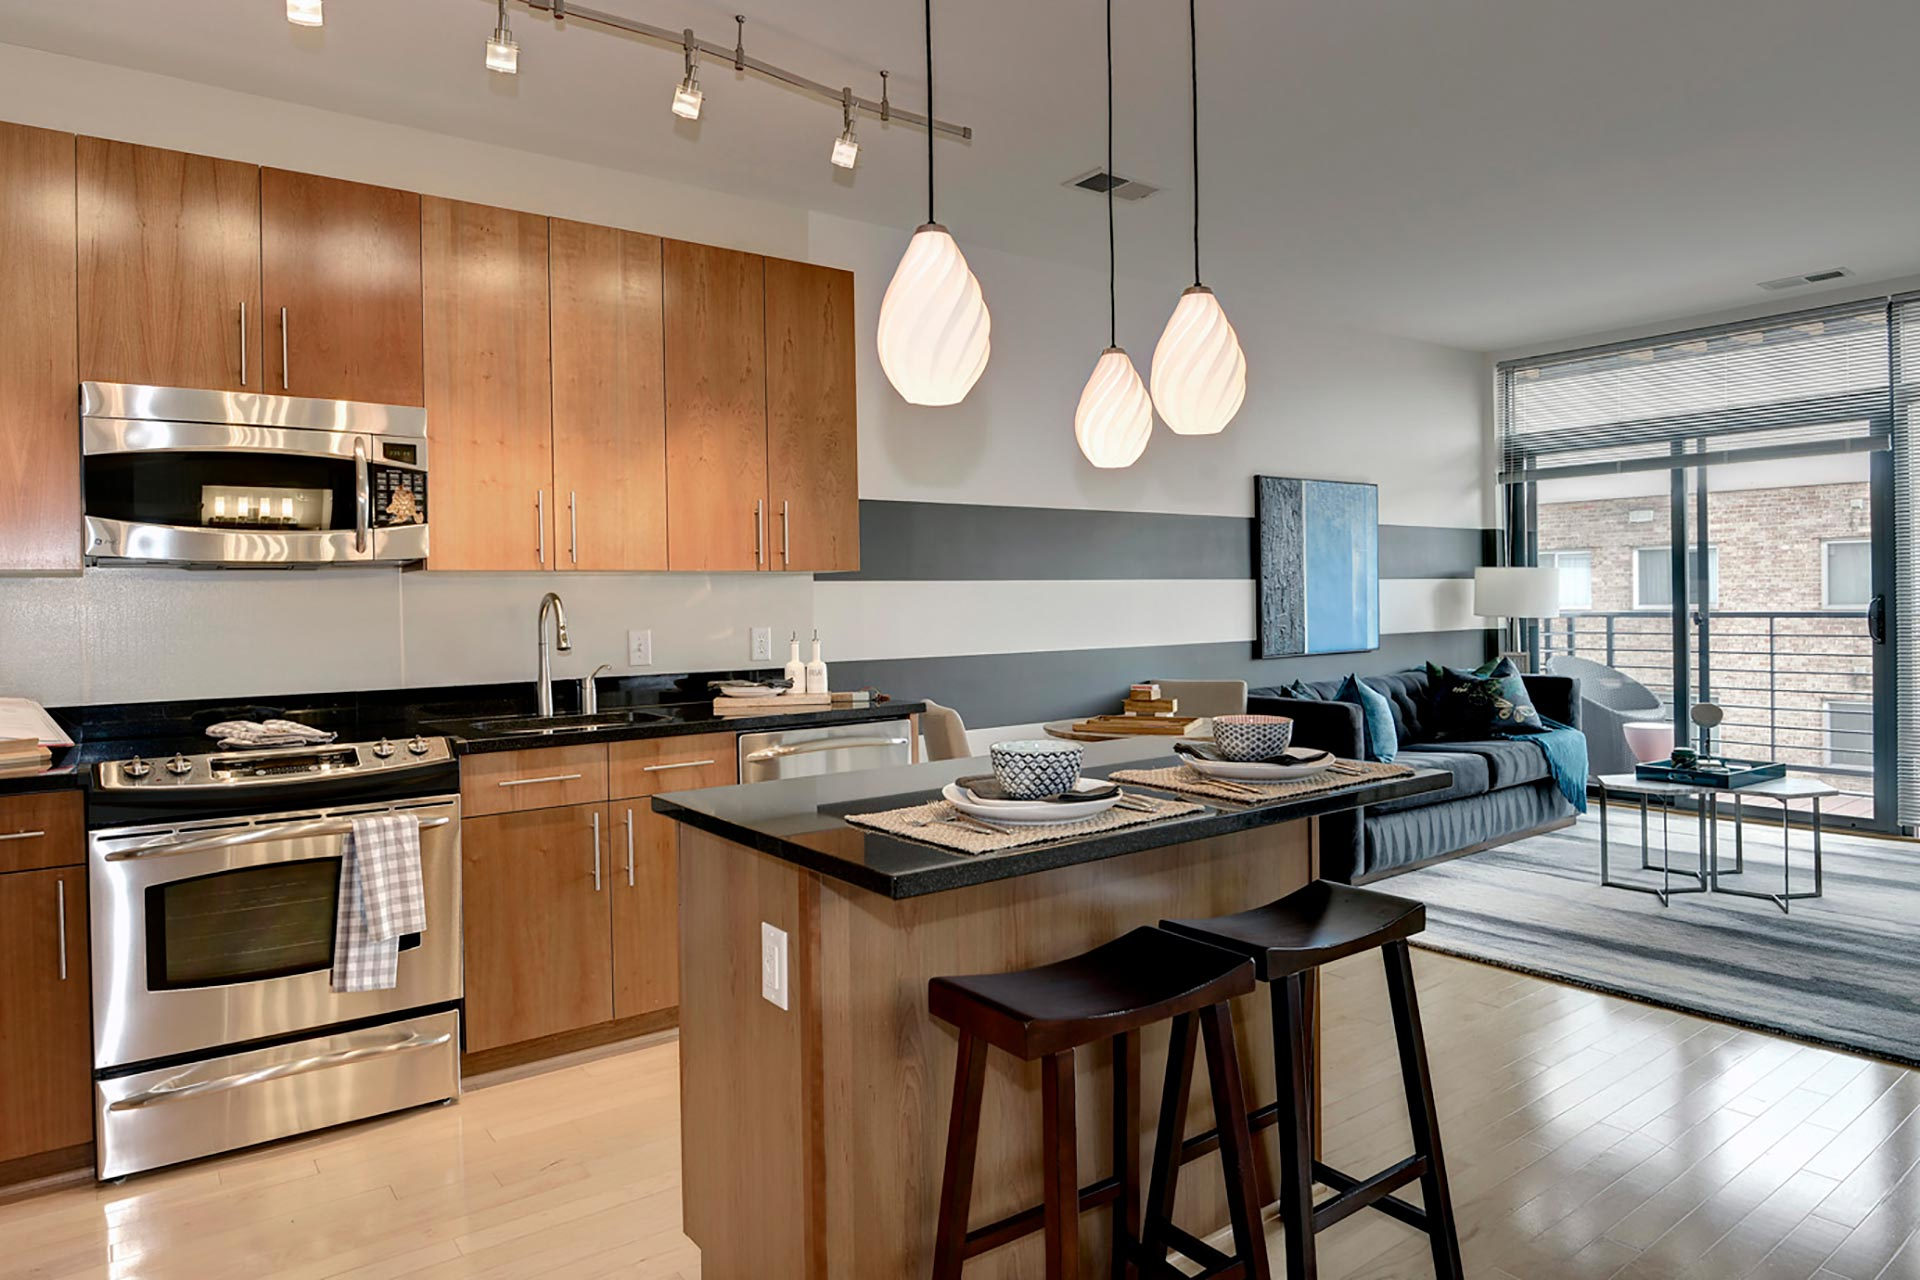 Angled view of model unit kitchen with stainless steel oven and microwave, bar island, and living room furniture beyond